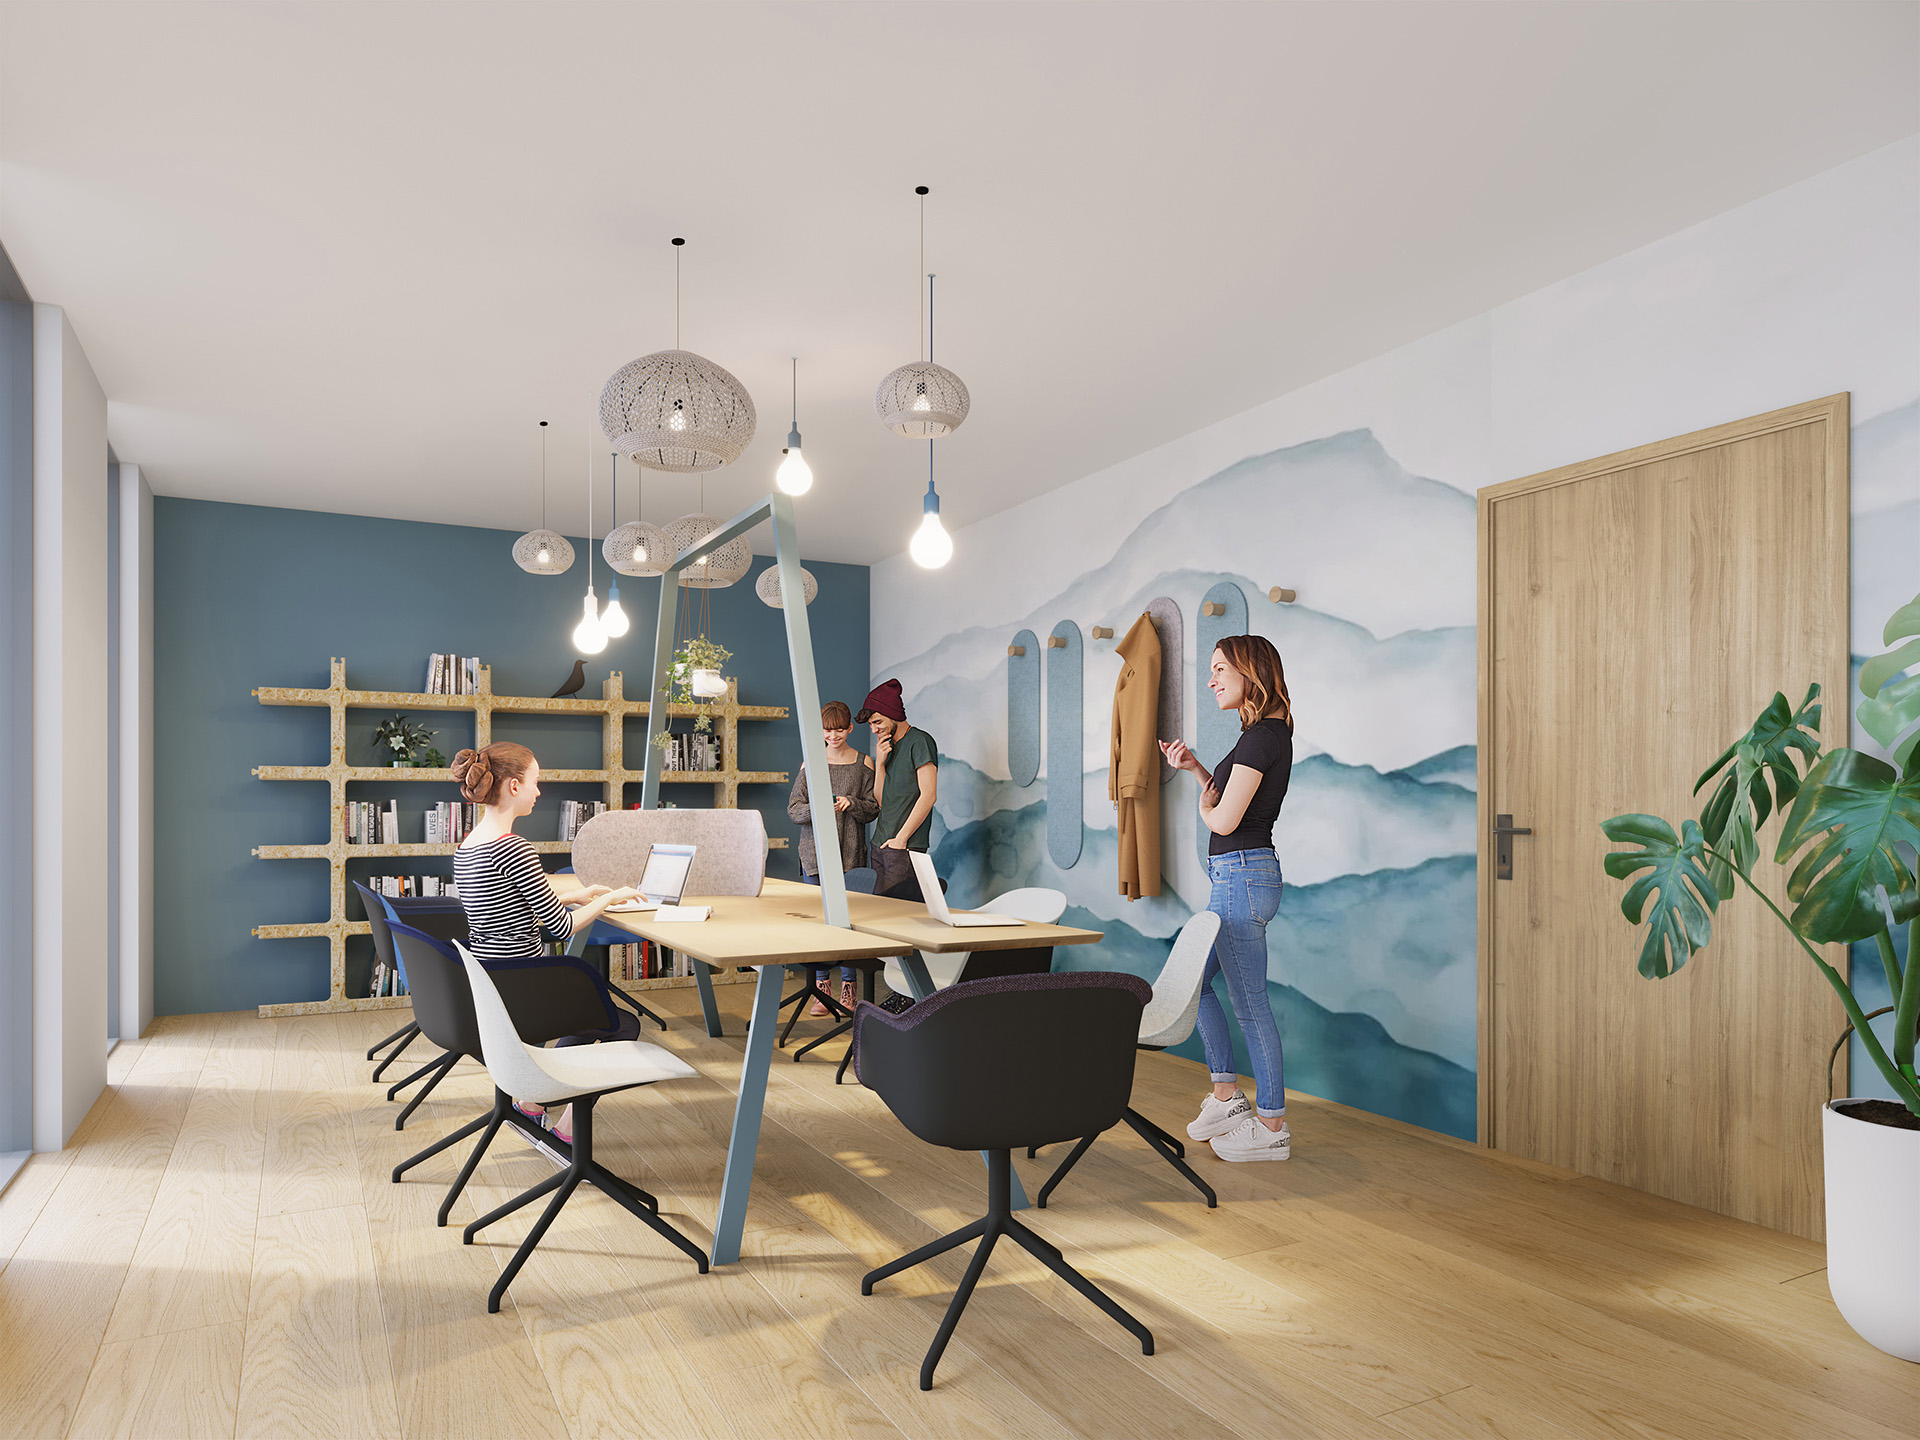 3D rendering of a modern and design meeting room